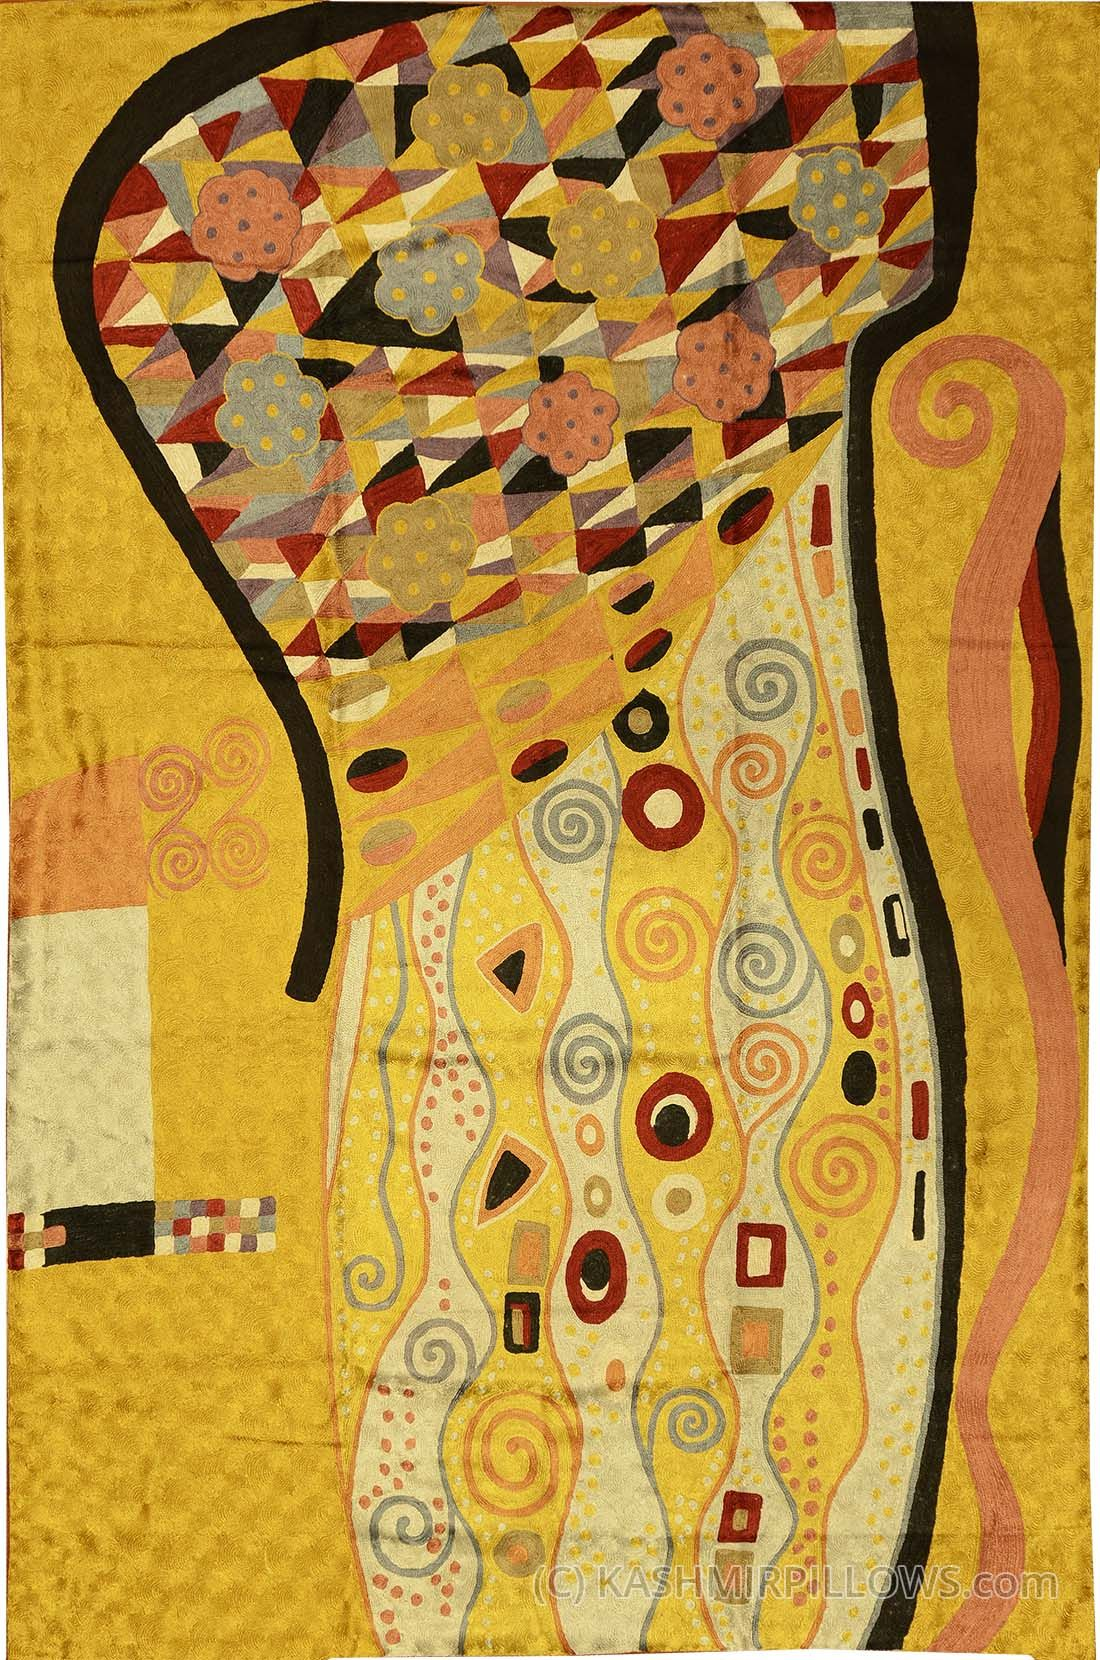 Abstract wall hangings accent carpets hand embroidered accent modern - Klimt X Art Nouveau Gold Silk Abstract Rug Tapestry Hand Embroidered Kashmir Fine Arts Craftskashmir Fine Arts Crafts